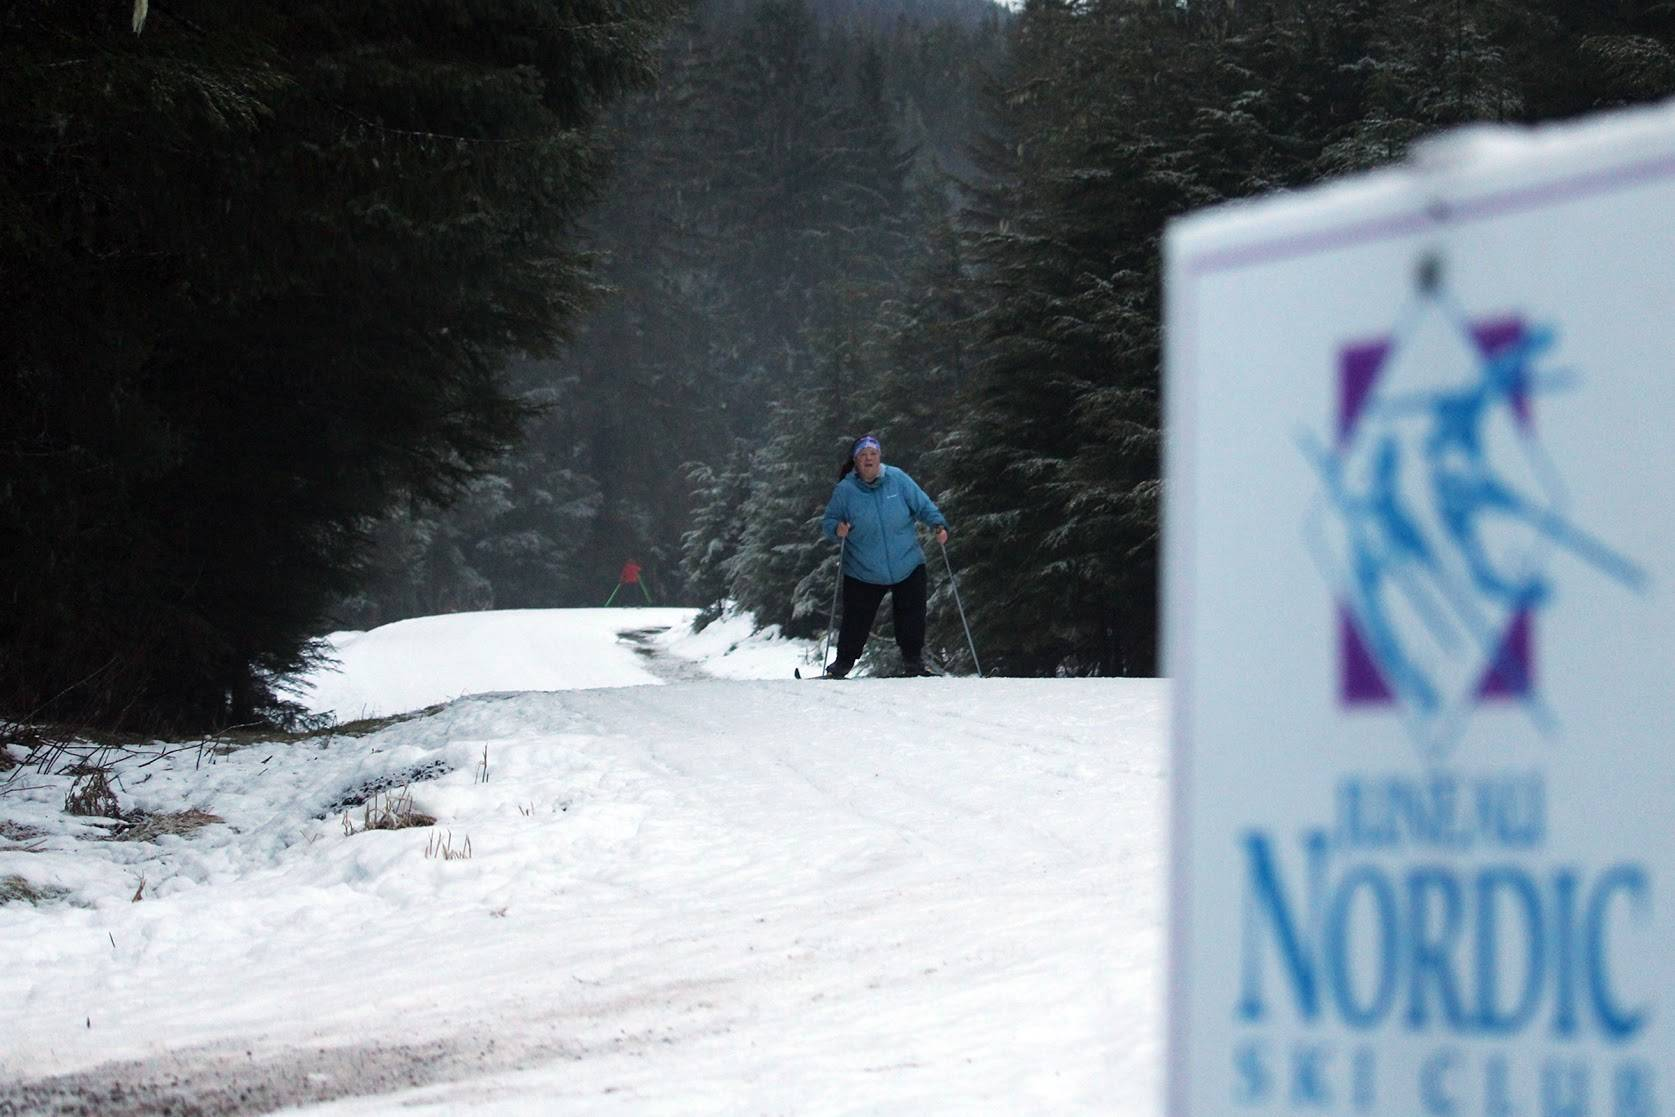 Allison Smith, a member of the Juneau Nordic Ski Club, passes another skier on her way along Montana Creek Road. Ski trails around Juneau will soon be hiding clues for Juneau Nordic Ski Club's ski-o'cache event. (Ben Hohenstatt/Juneau Empire)